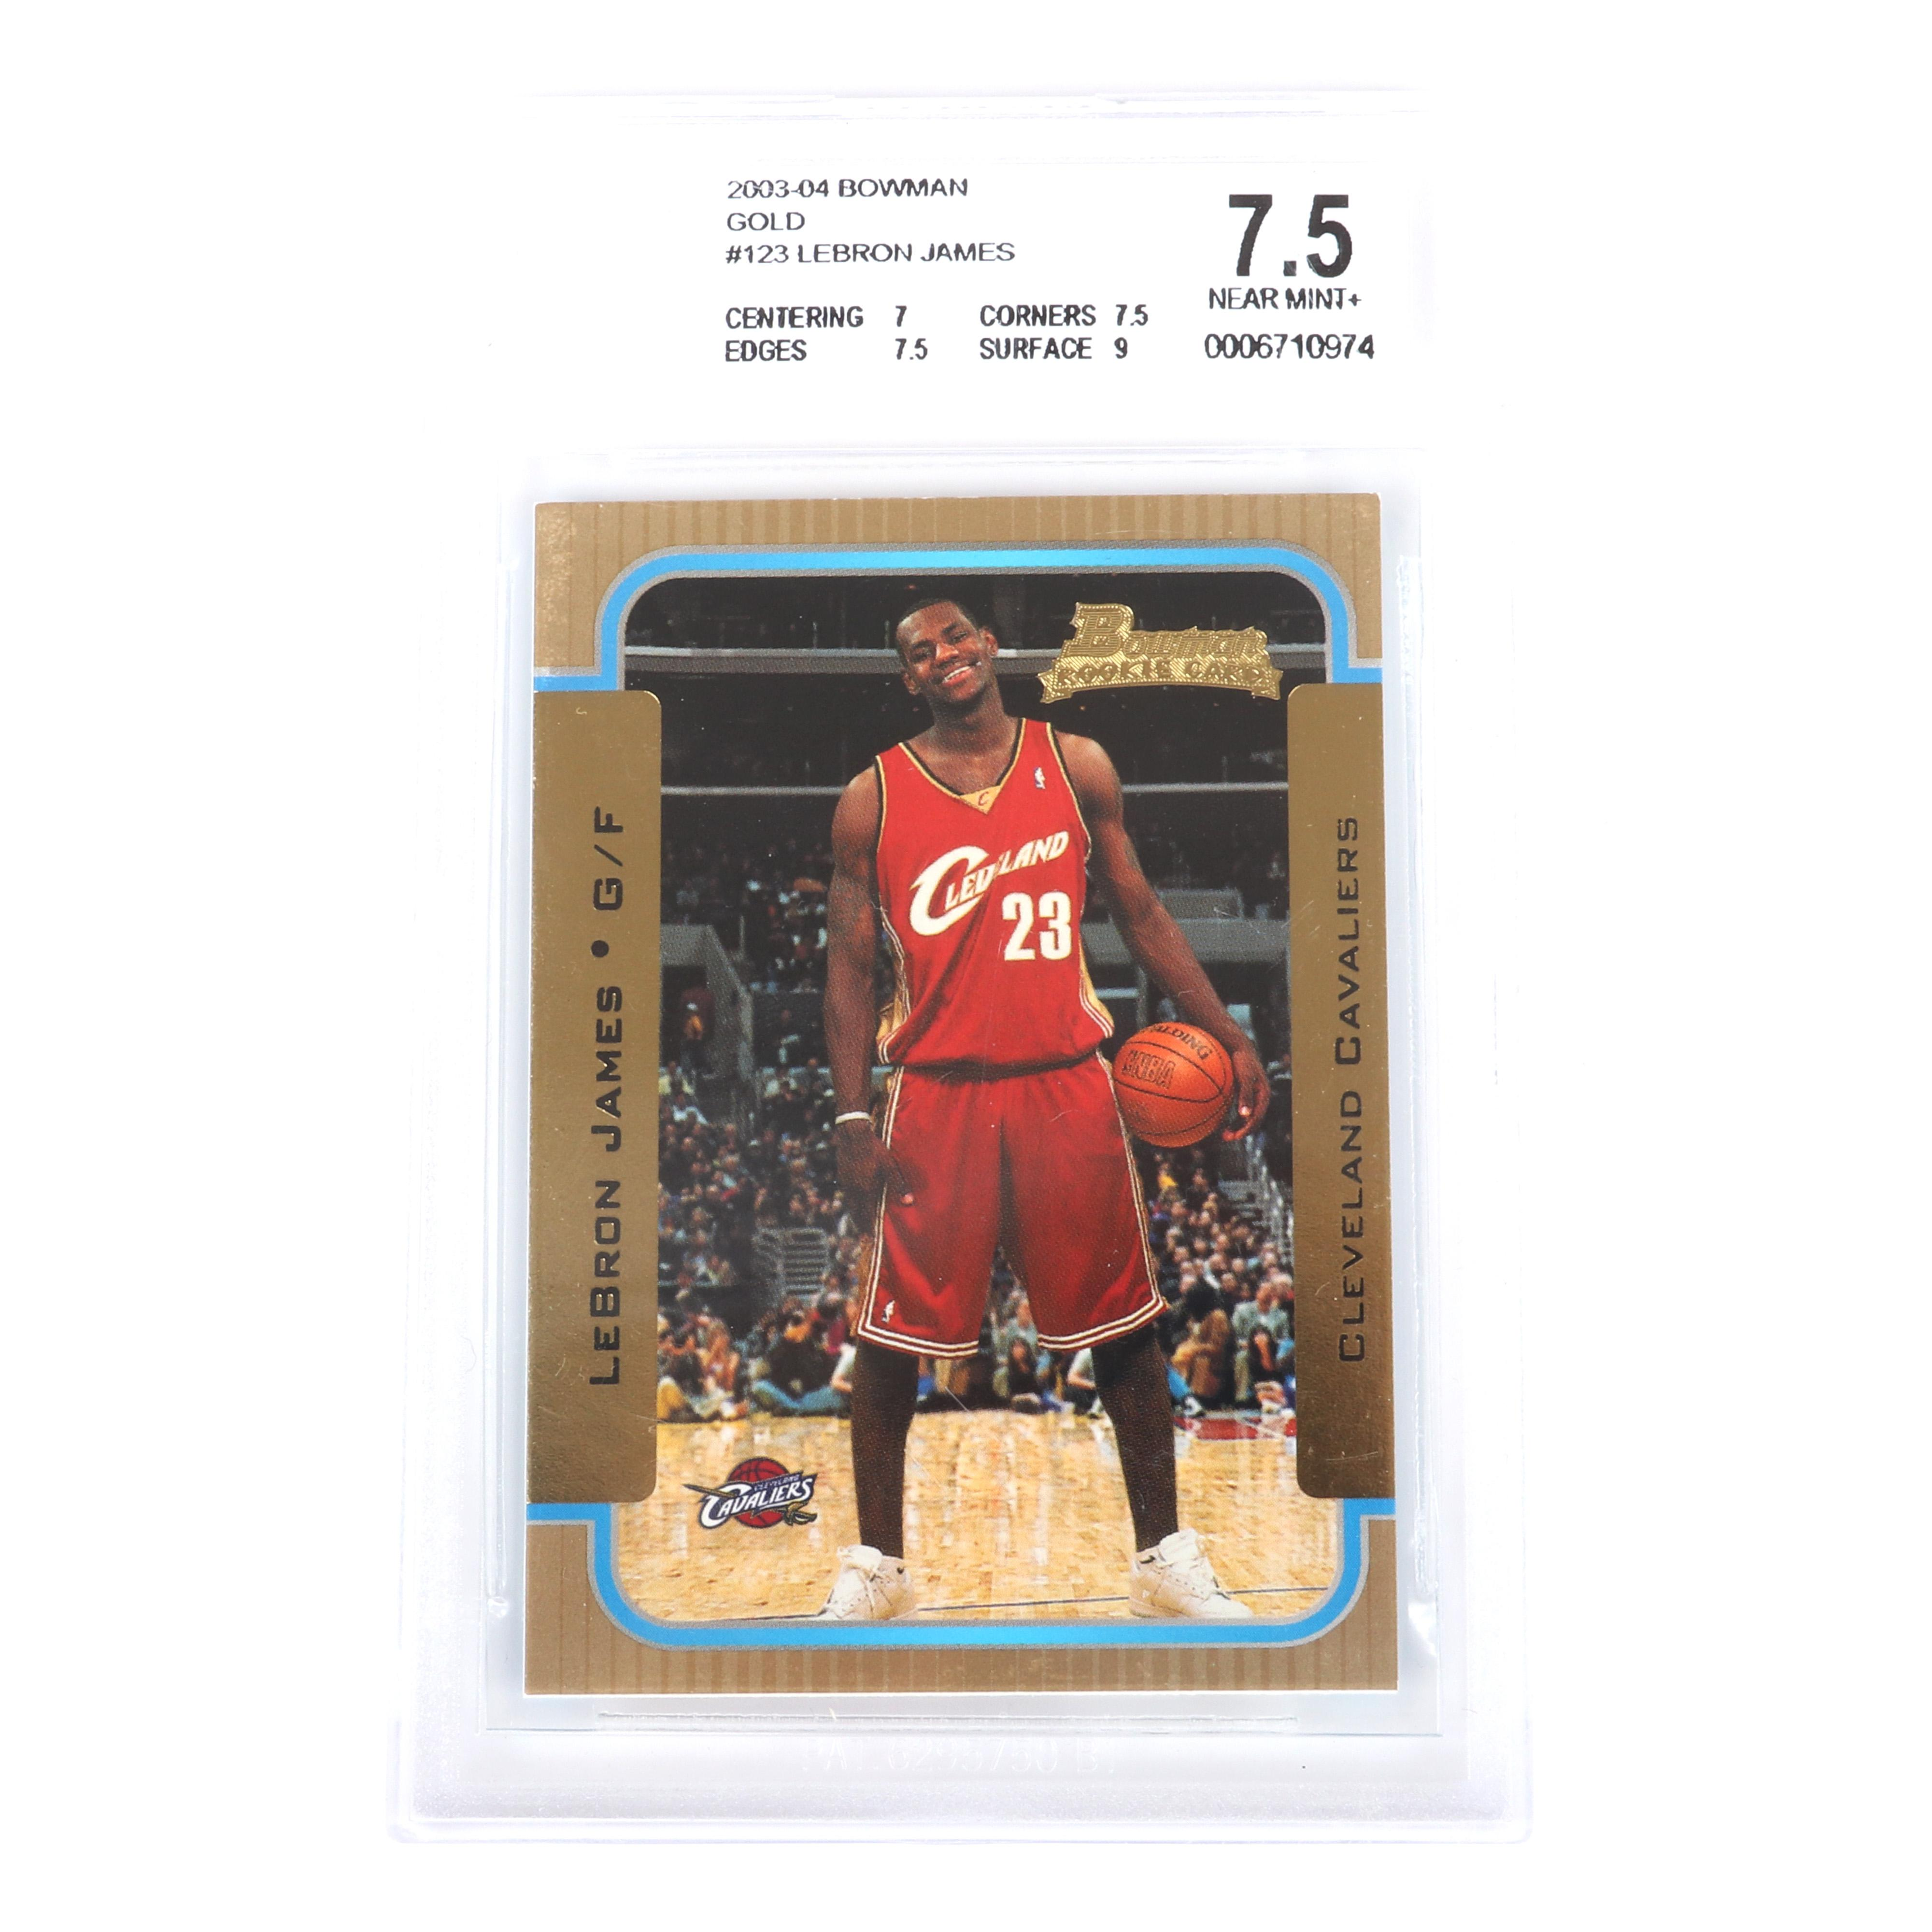 2003-04 Lebron James Bowman Gold Rookie Card # 123 BGS 7.5